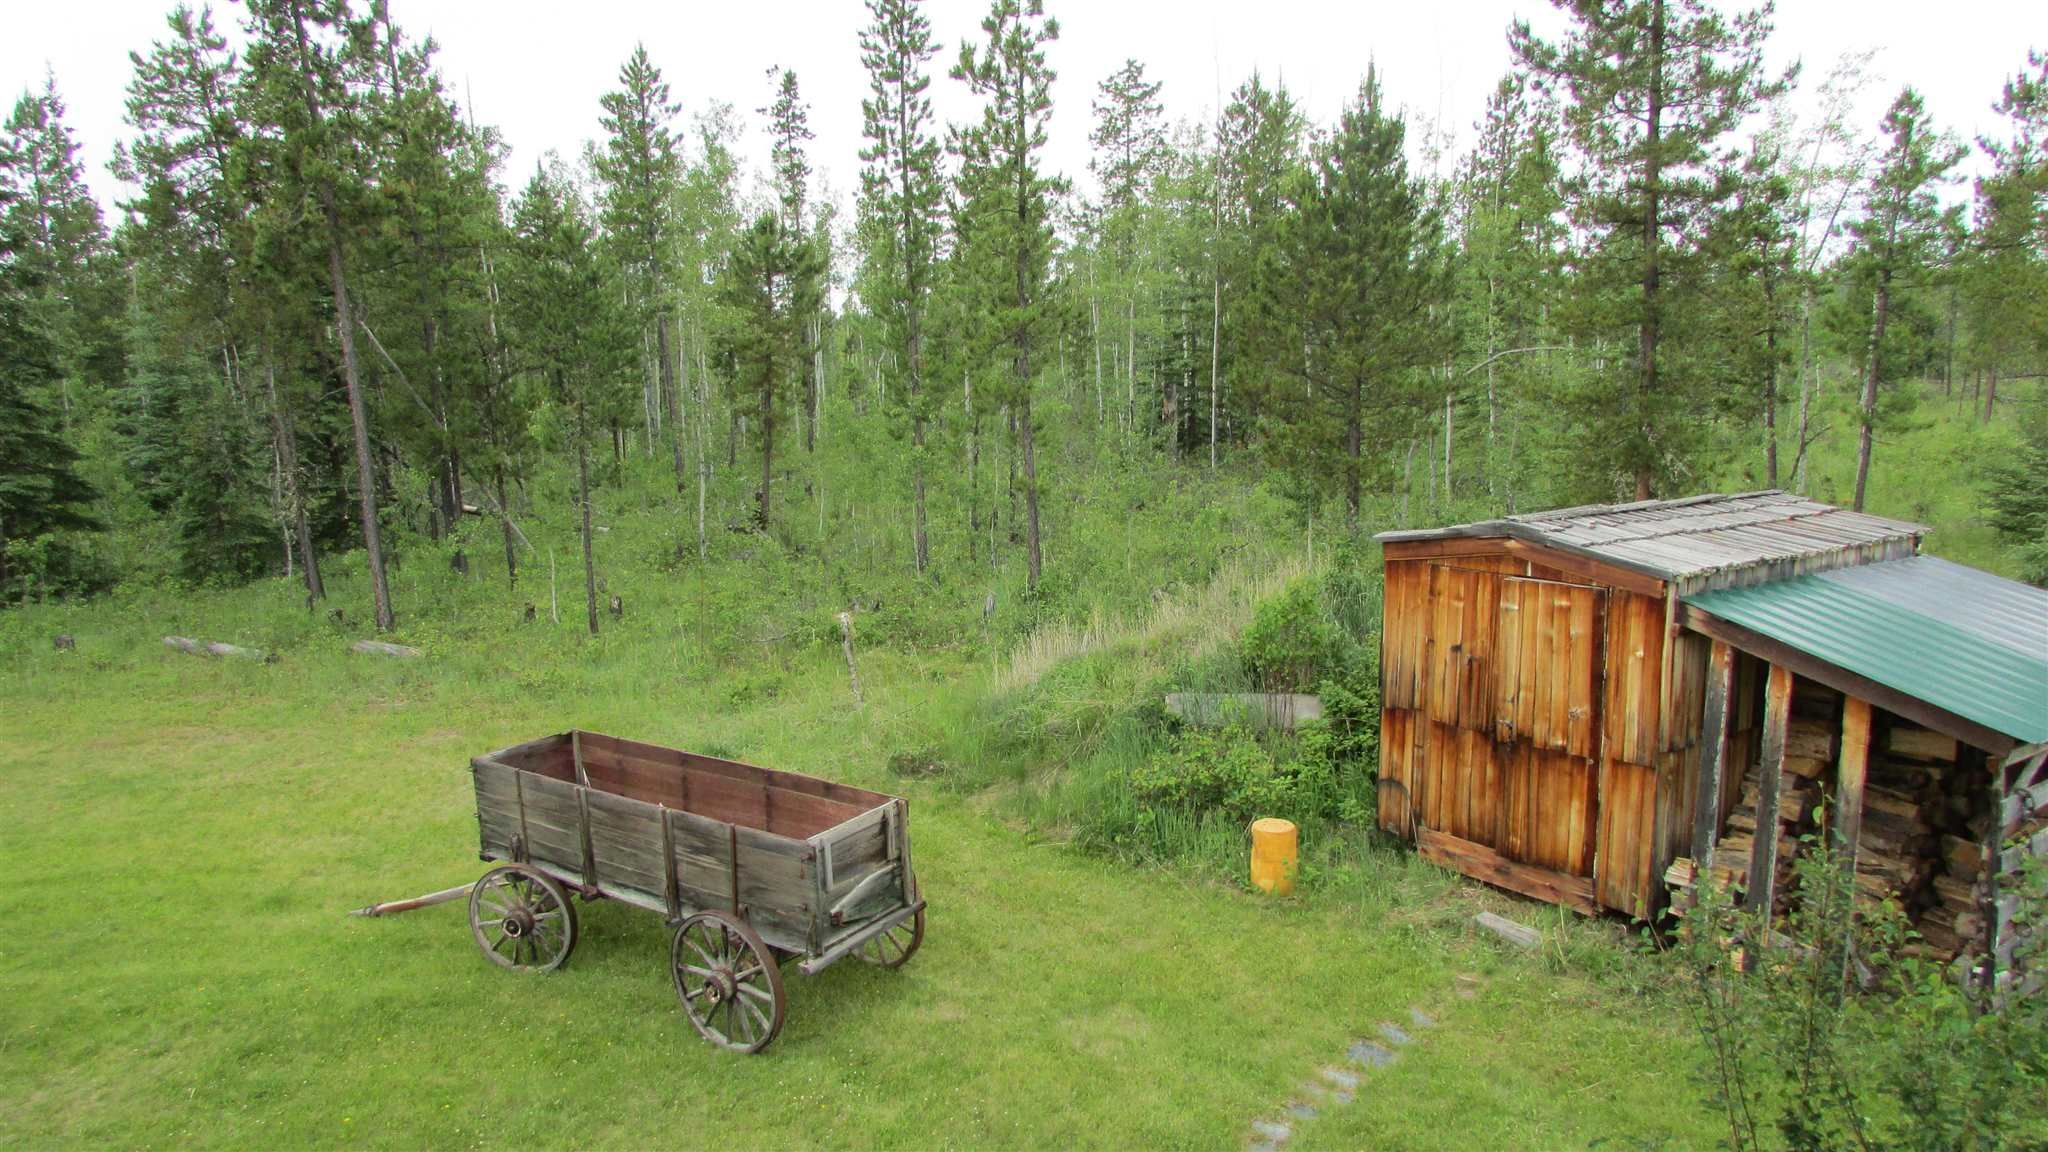 """Photo 6: Photos: 4663 RESCHKE Road: Hudsons Hope House for sale in """"LYNX CREEK SUBDIVISION"""" (Fort St. John (Zone 60))  : MLS®# R2594975"""